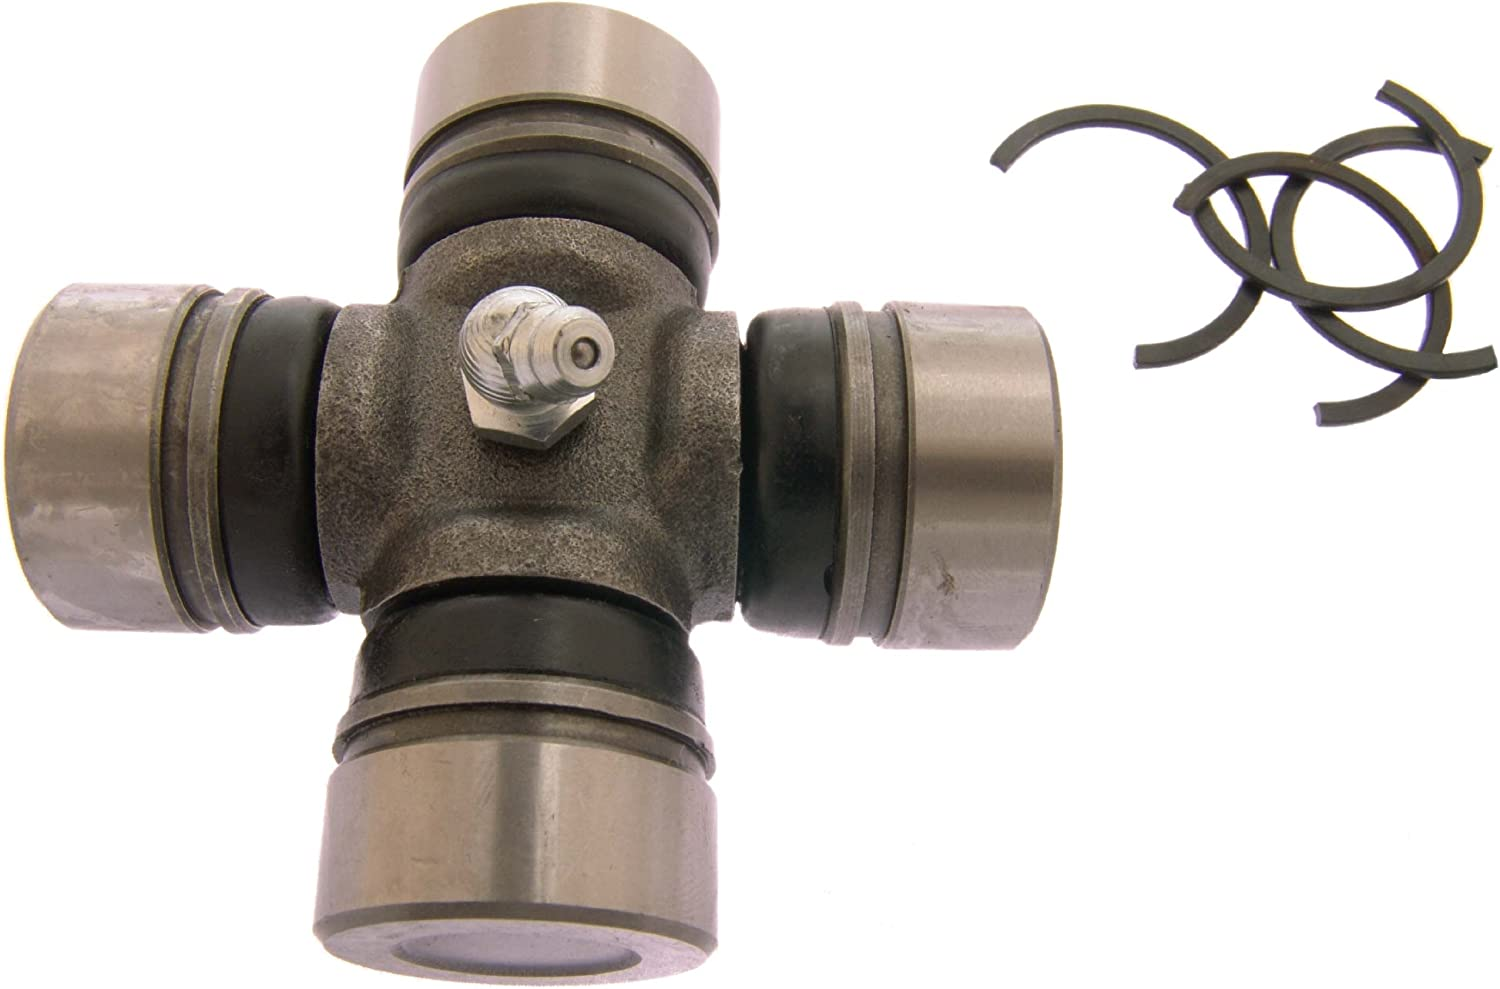 04371-35050 437135050 Superior - Be super welcome Universal Joint 29X49 For To U-Joint